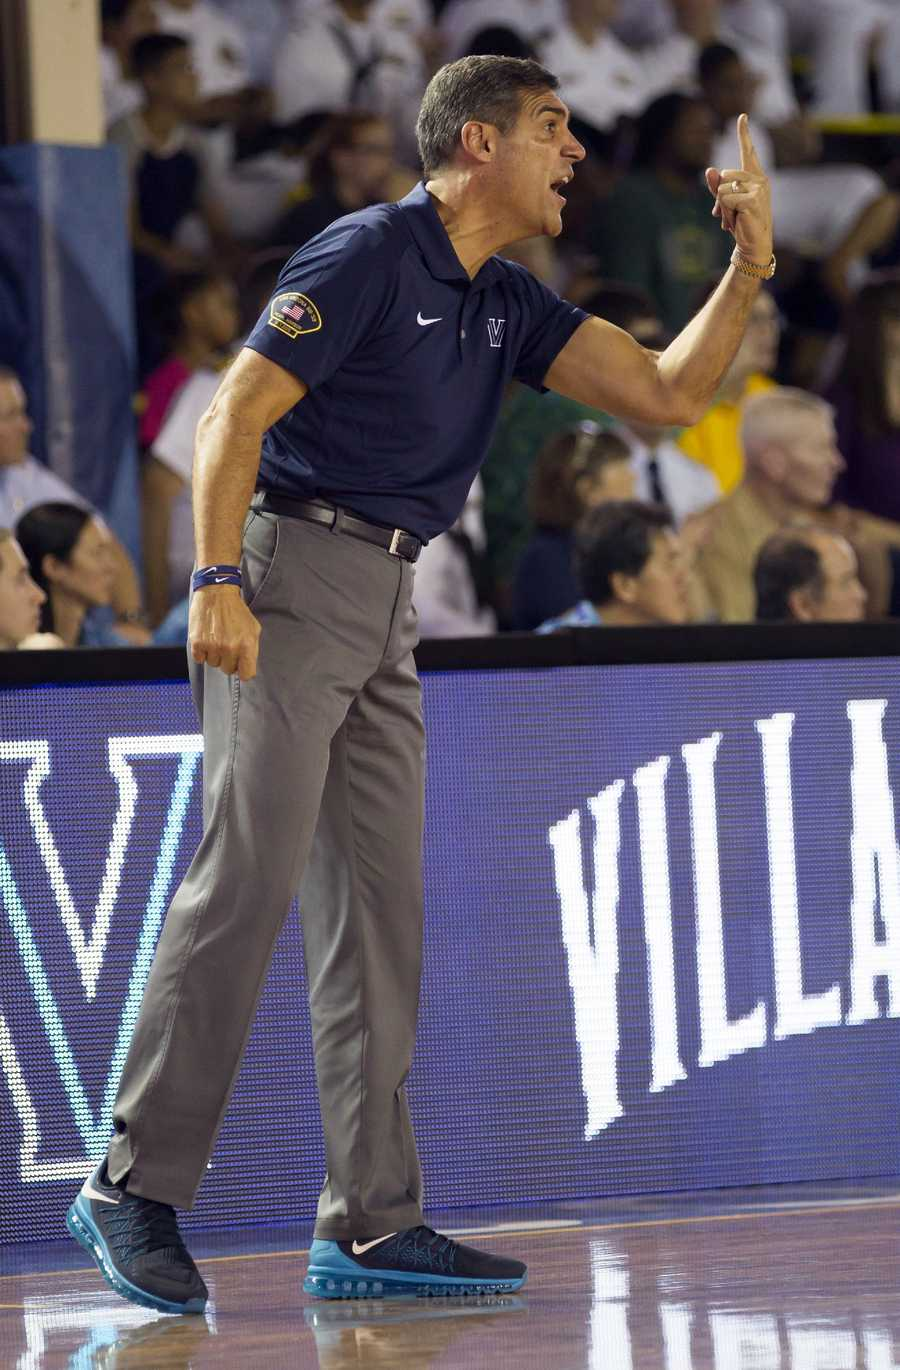 Villanova head coach Jay Wright calls a play as his team takes on Oklahoma in the first half of an NCAA college basketball game at the Pearl Harbor Invitational on Monday, Dec. 7, 2015, in Honolulu.